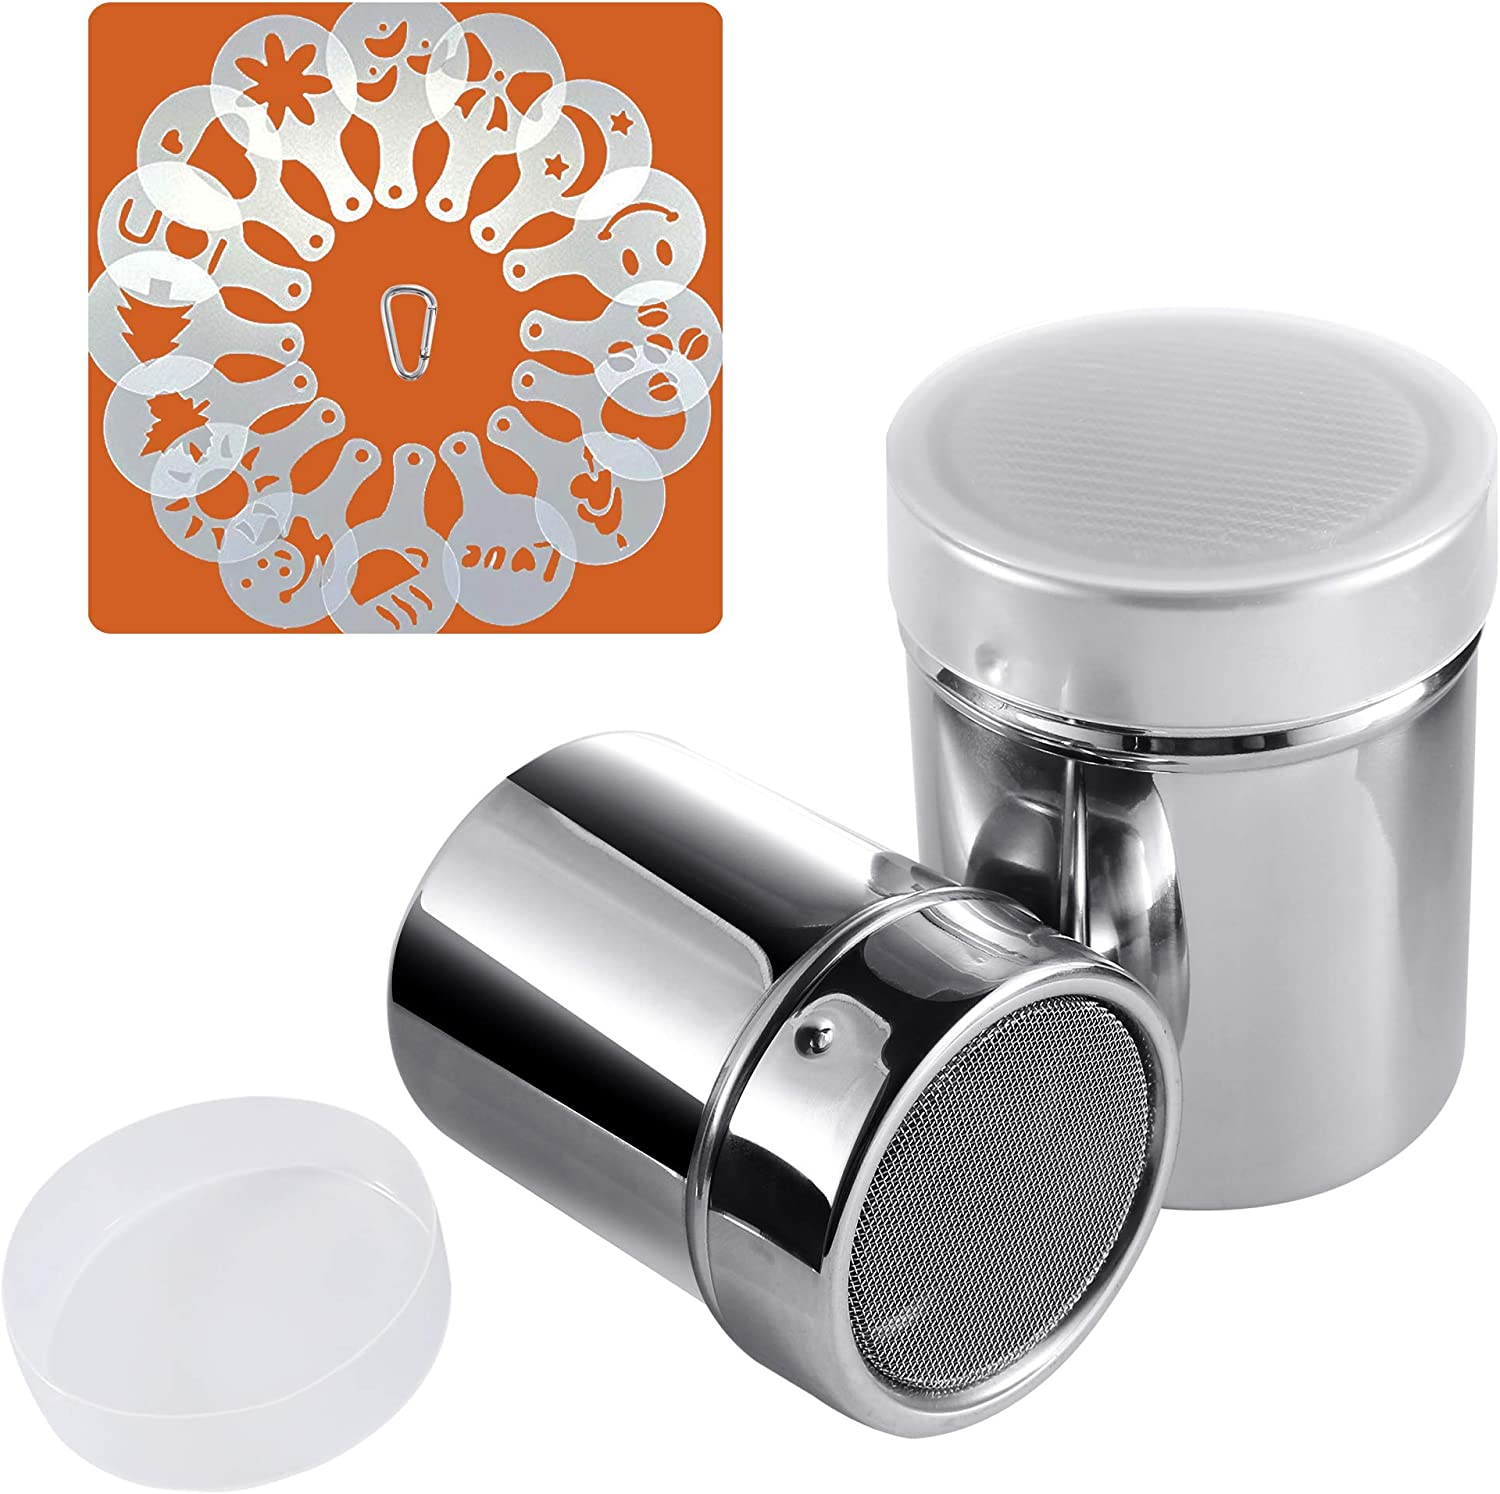 Powder Sugar Shaker with Lid, SOSMAR 2 Sizes 18/8 Stainless Steel Cocoa Cinnamon Mesh Sifter/Sprinkler/Dredgers for Coffee Cappuccino Latte, 16 Pcs ...